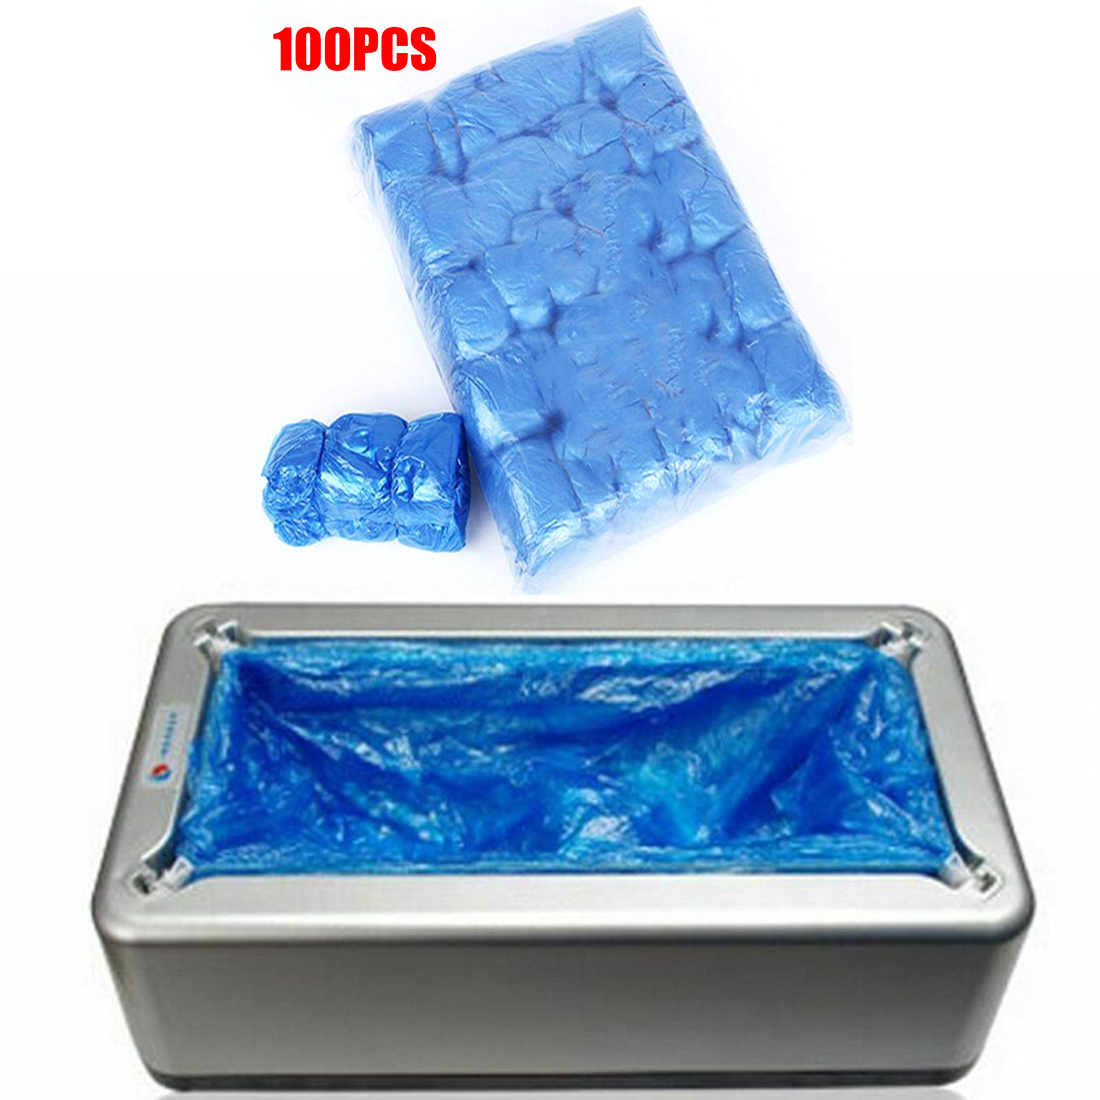 100pcs PE Blue T-type Single Use Shoe Cover Machine Convenient Covers Bags Replacement Outdoor Shoe Protection